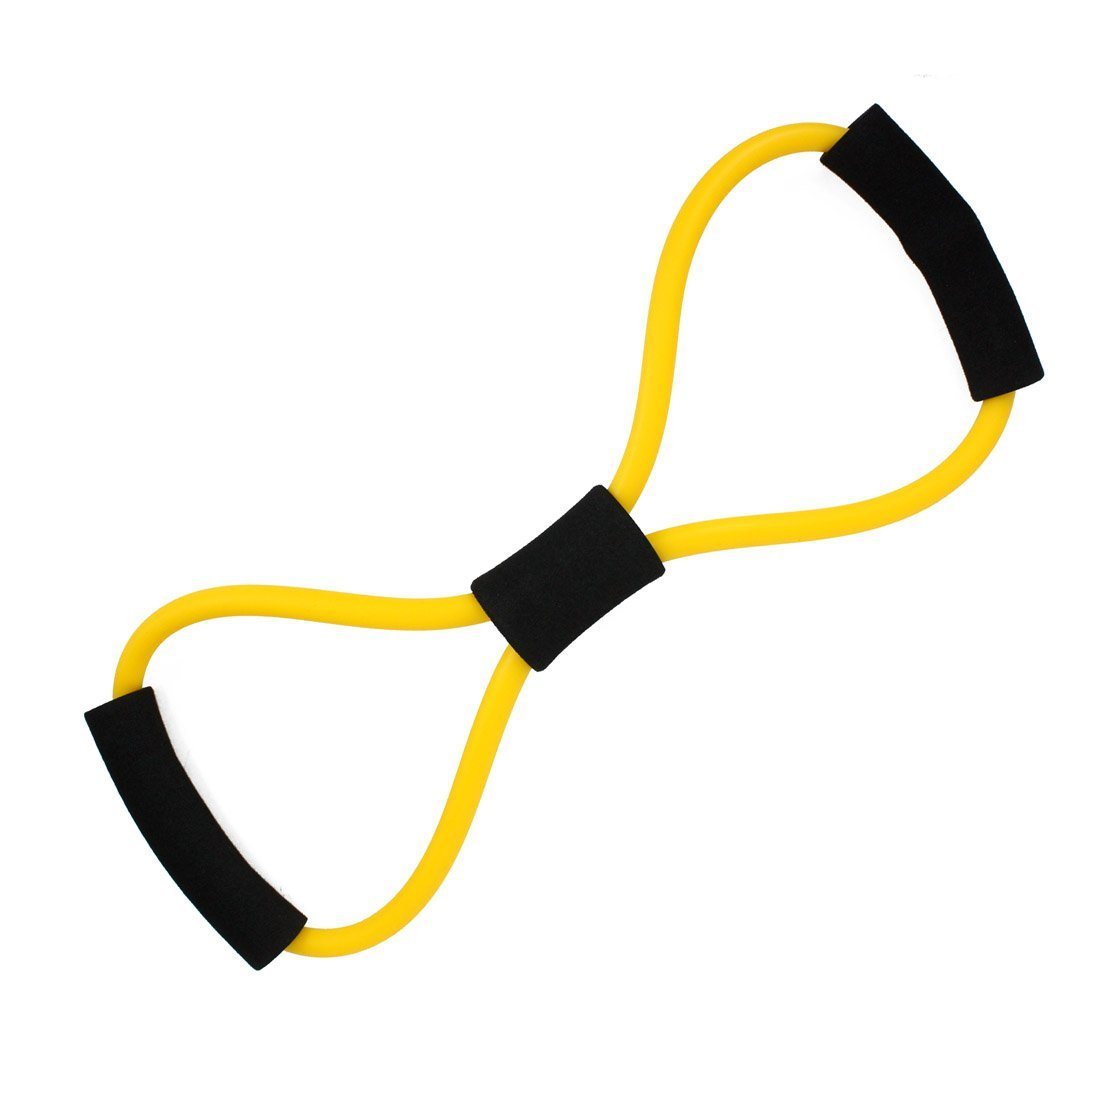 Balego™ Figure 8 Resistance Tubing, light (yellow) 6 lbs.